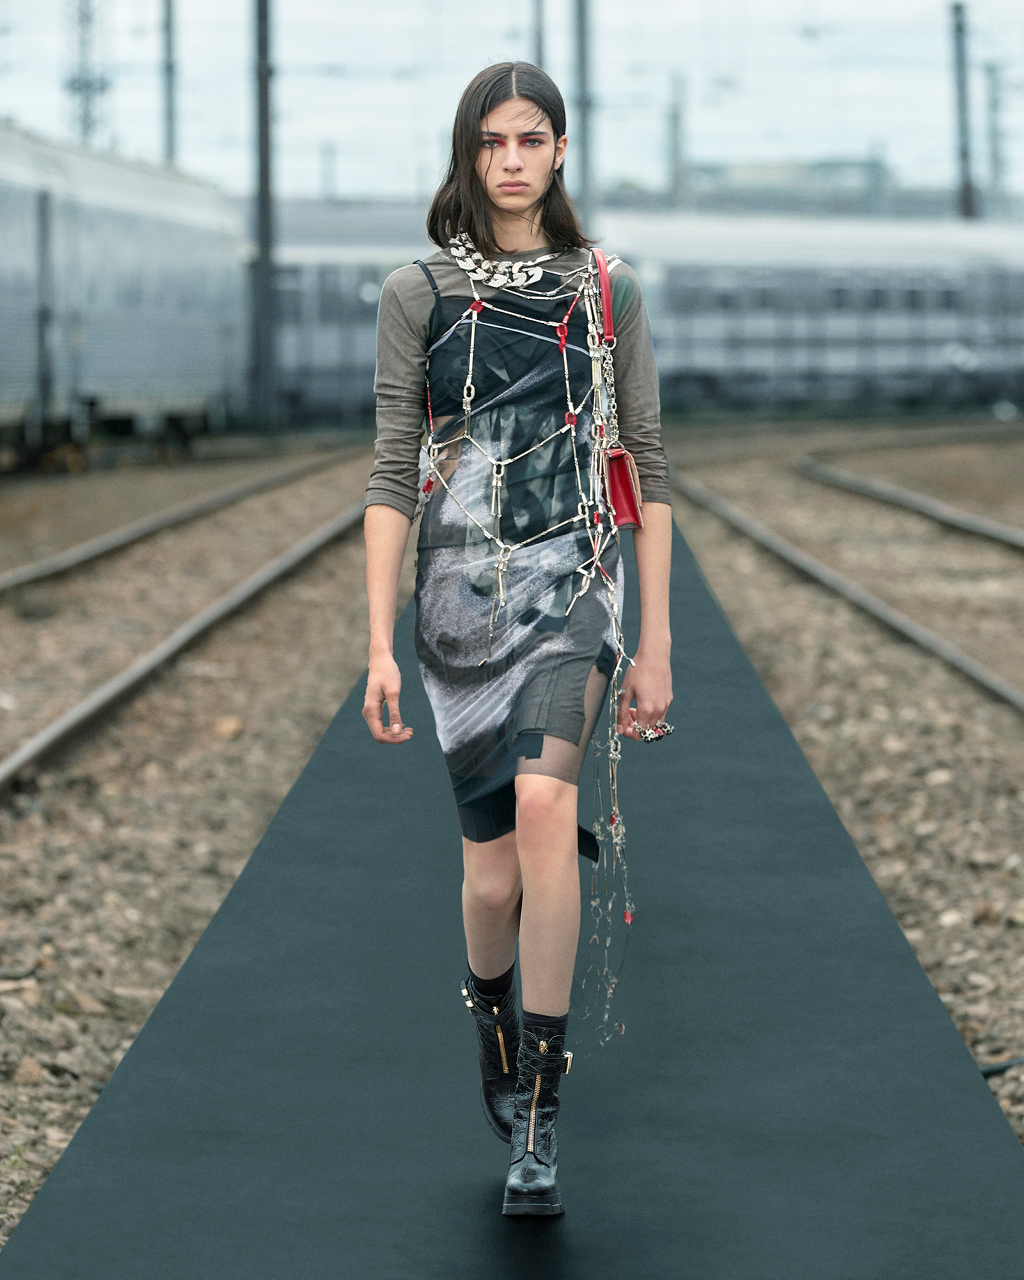 Spring 2022 pre-collection Look 4